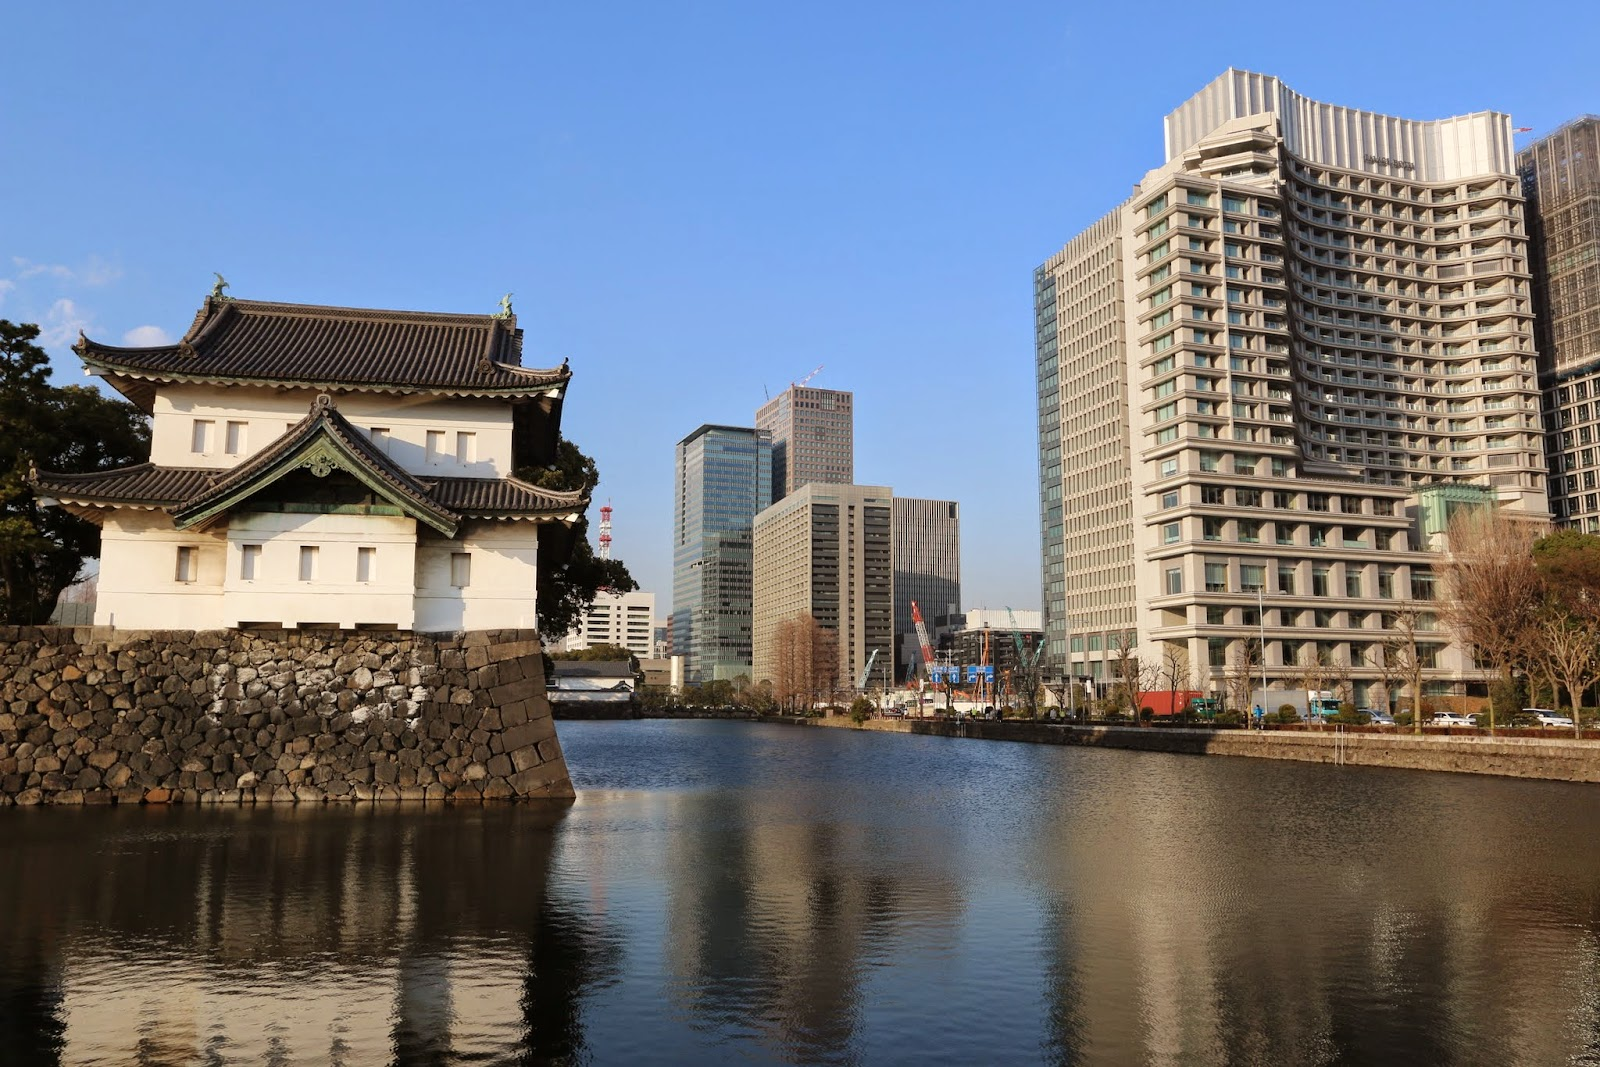 We took the Tokyo bus tour around Marunouchi Course which was very fascinating to see the blend city view of skyscrapers with Imperial Palace and historical train station